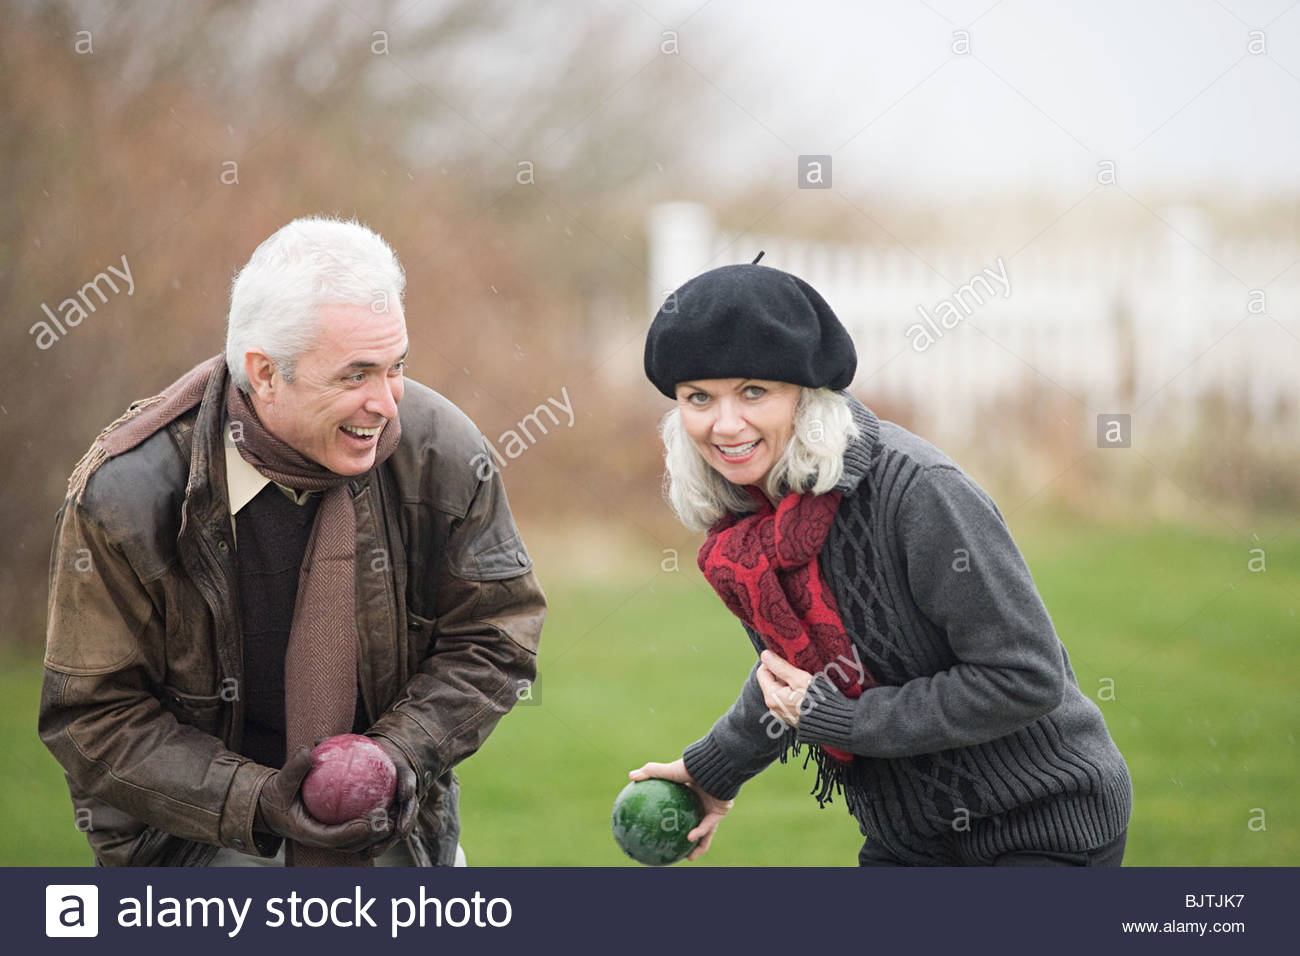 Couple playing lawn bowls - Stock Image